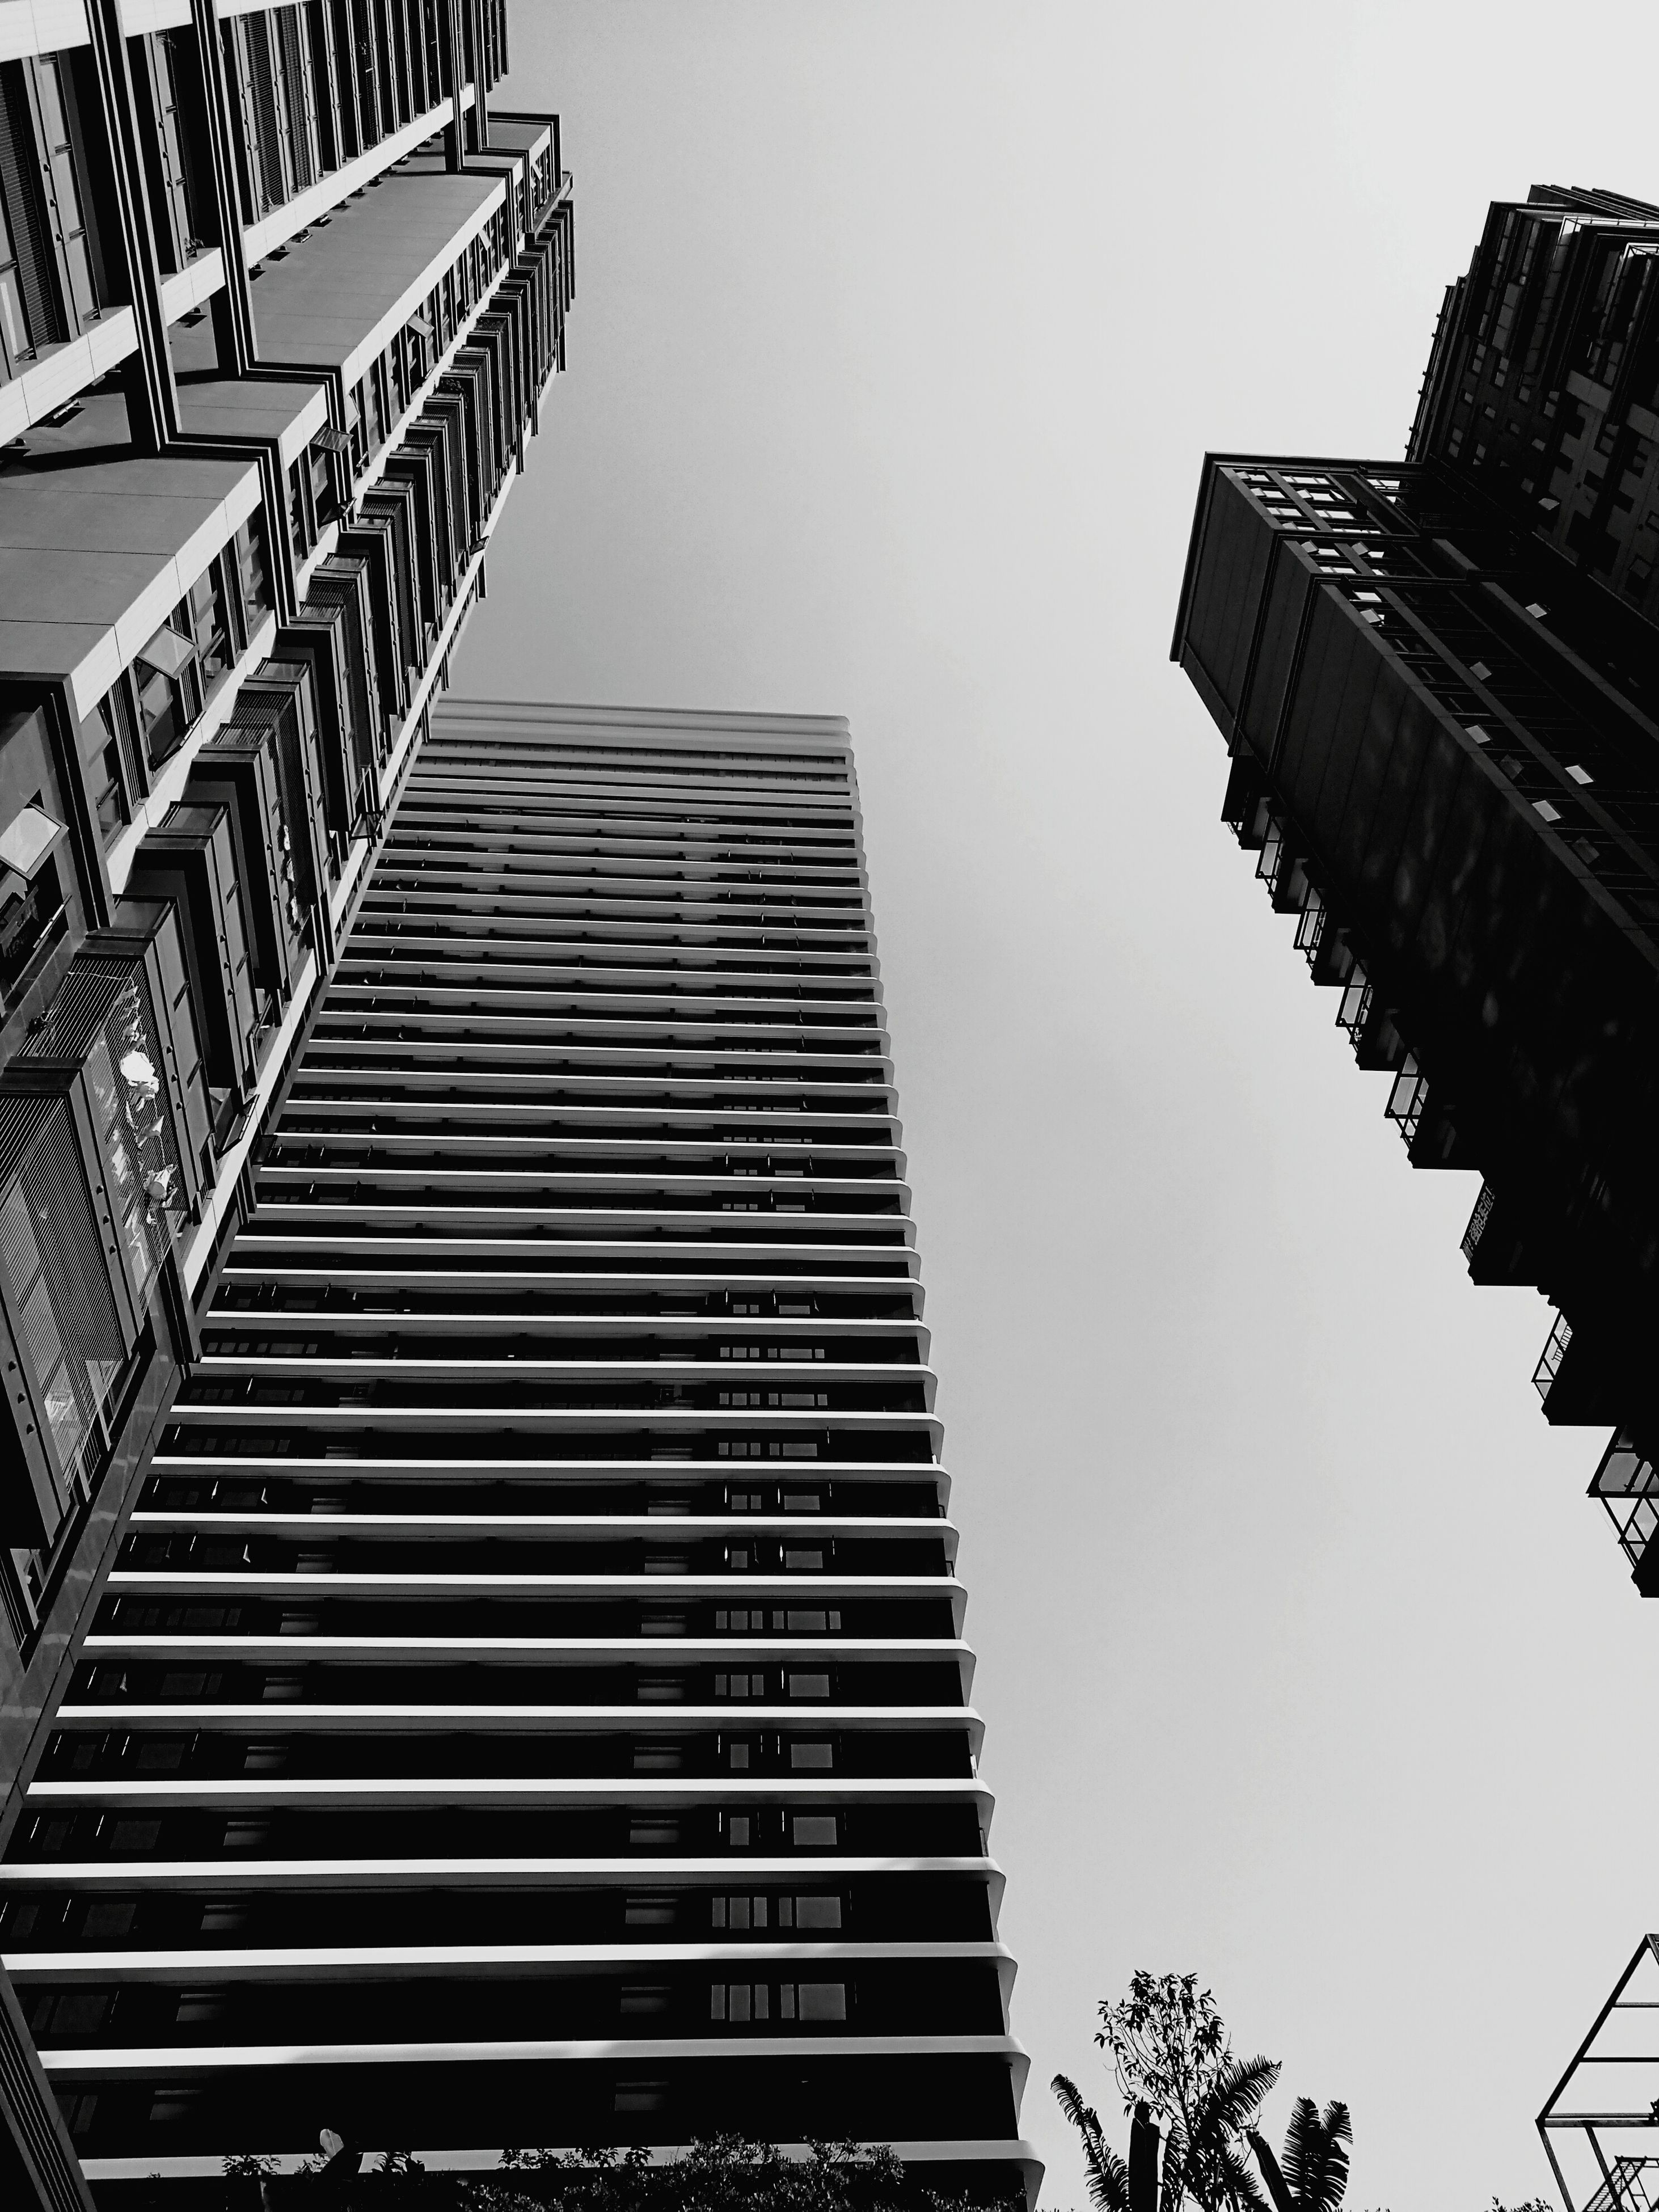 low angle view, architecture, building exterior, built structure, tall - high, skyscraper, city, tower, office building, sky, clear sky, modern, outdoors, building story, day, urban skyline, city life, capital cities, no people, financial district